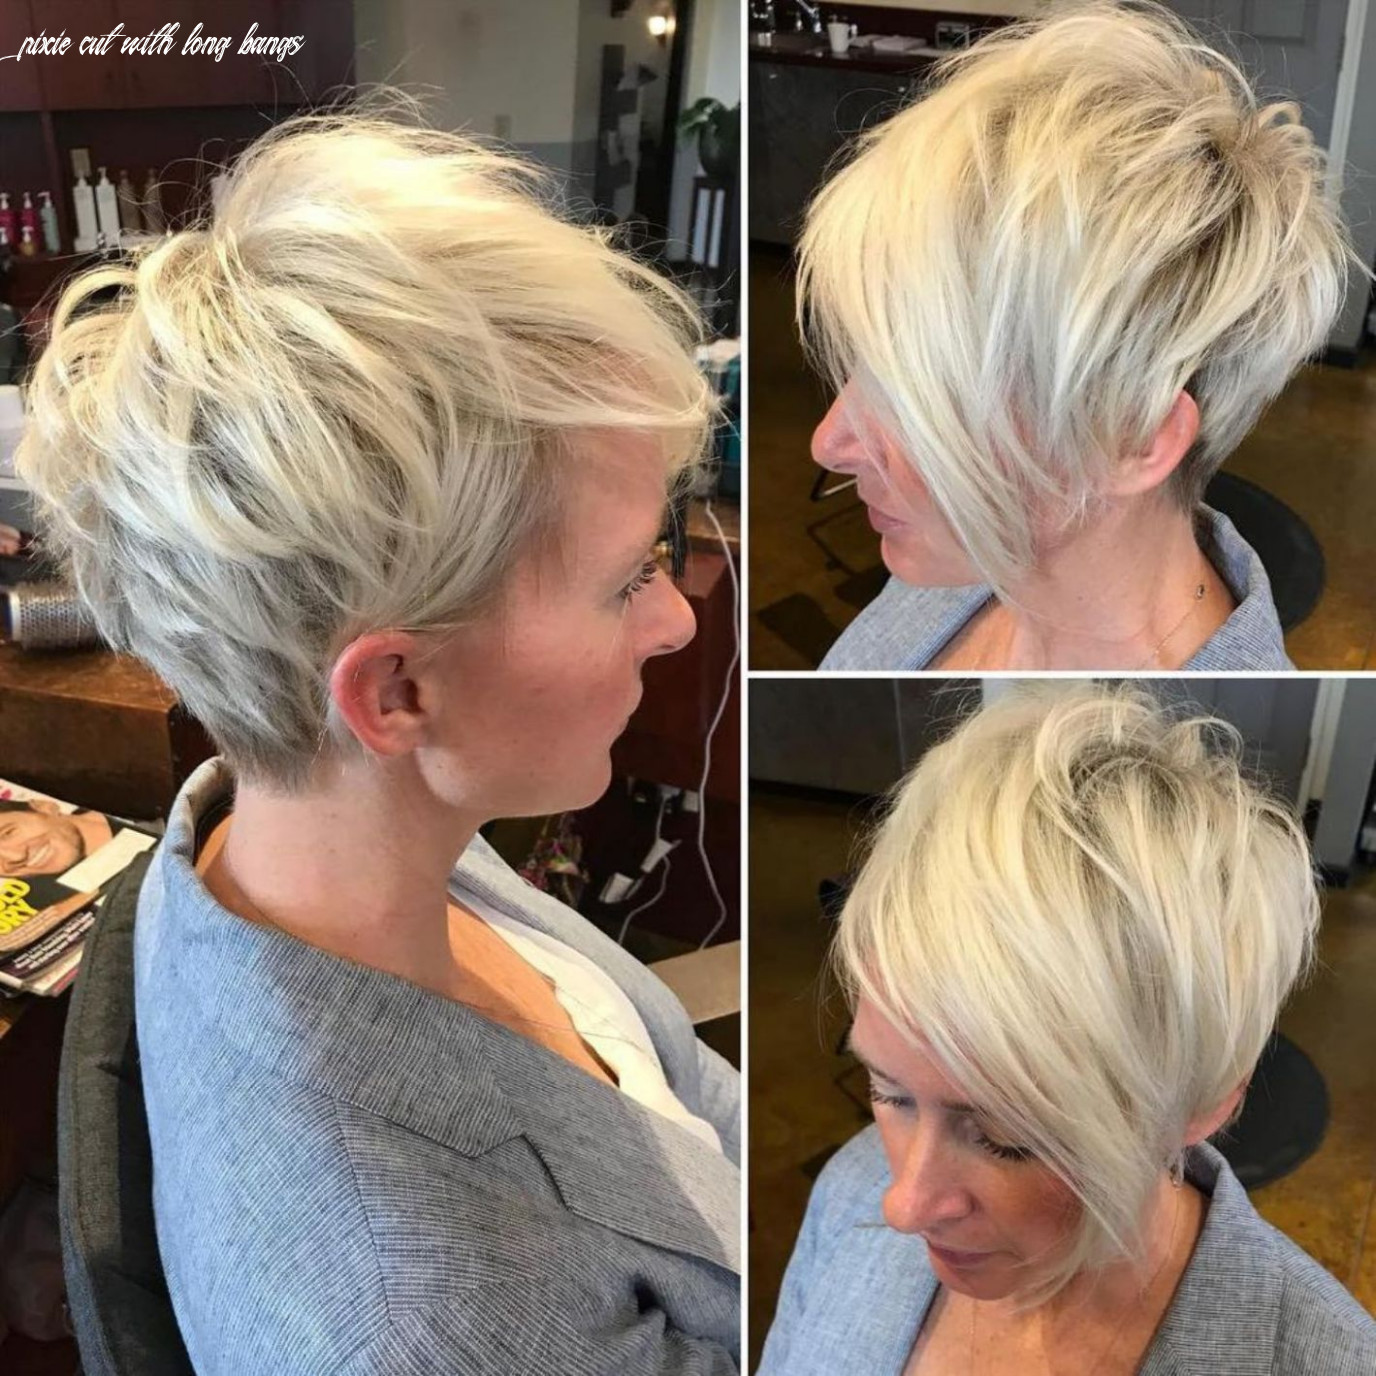 Pixie haircuts with bangs 12 terrific tapers | long pixie